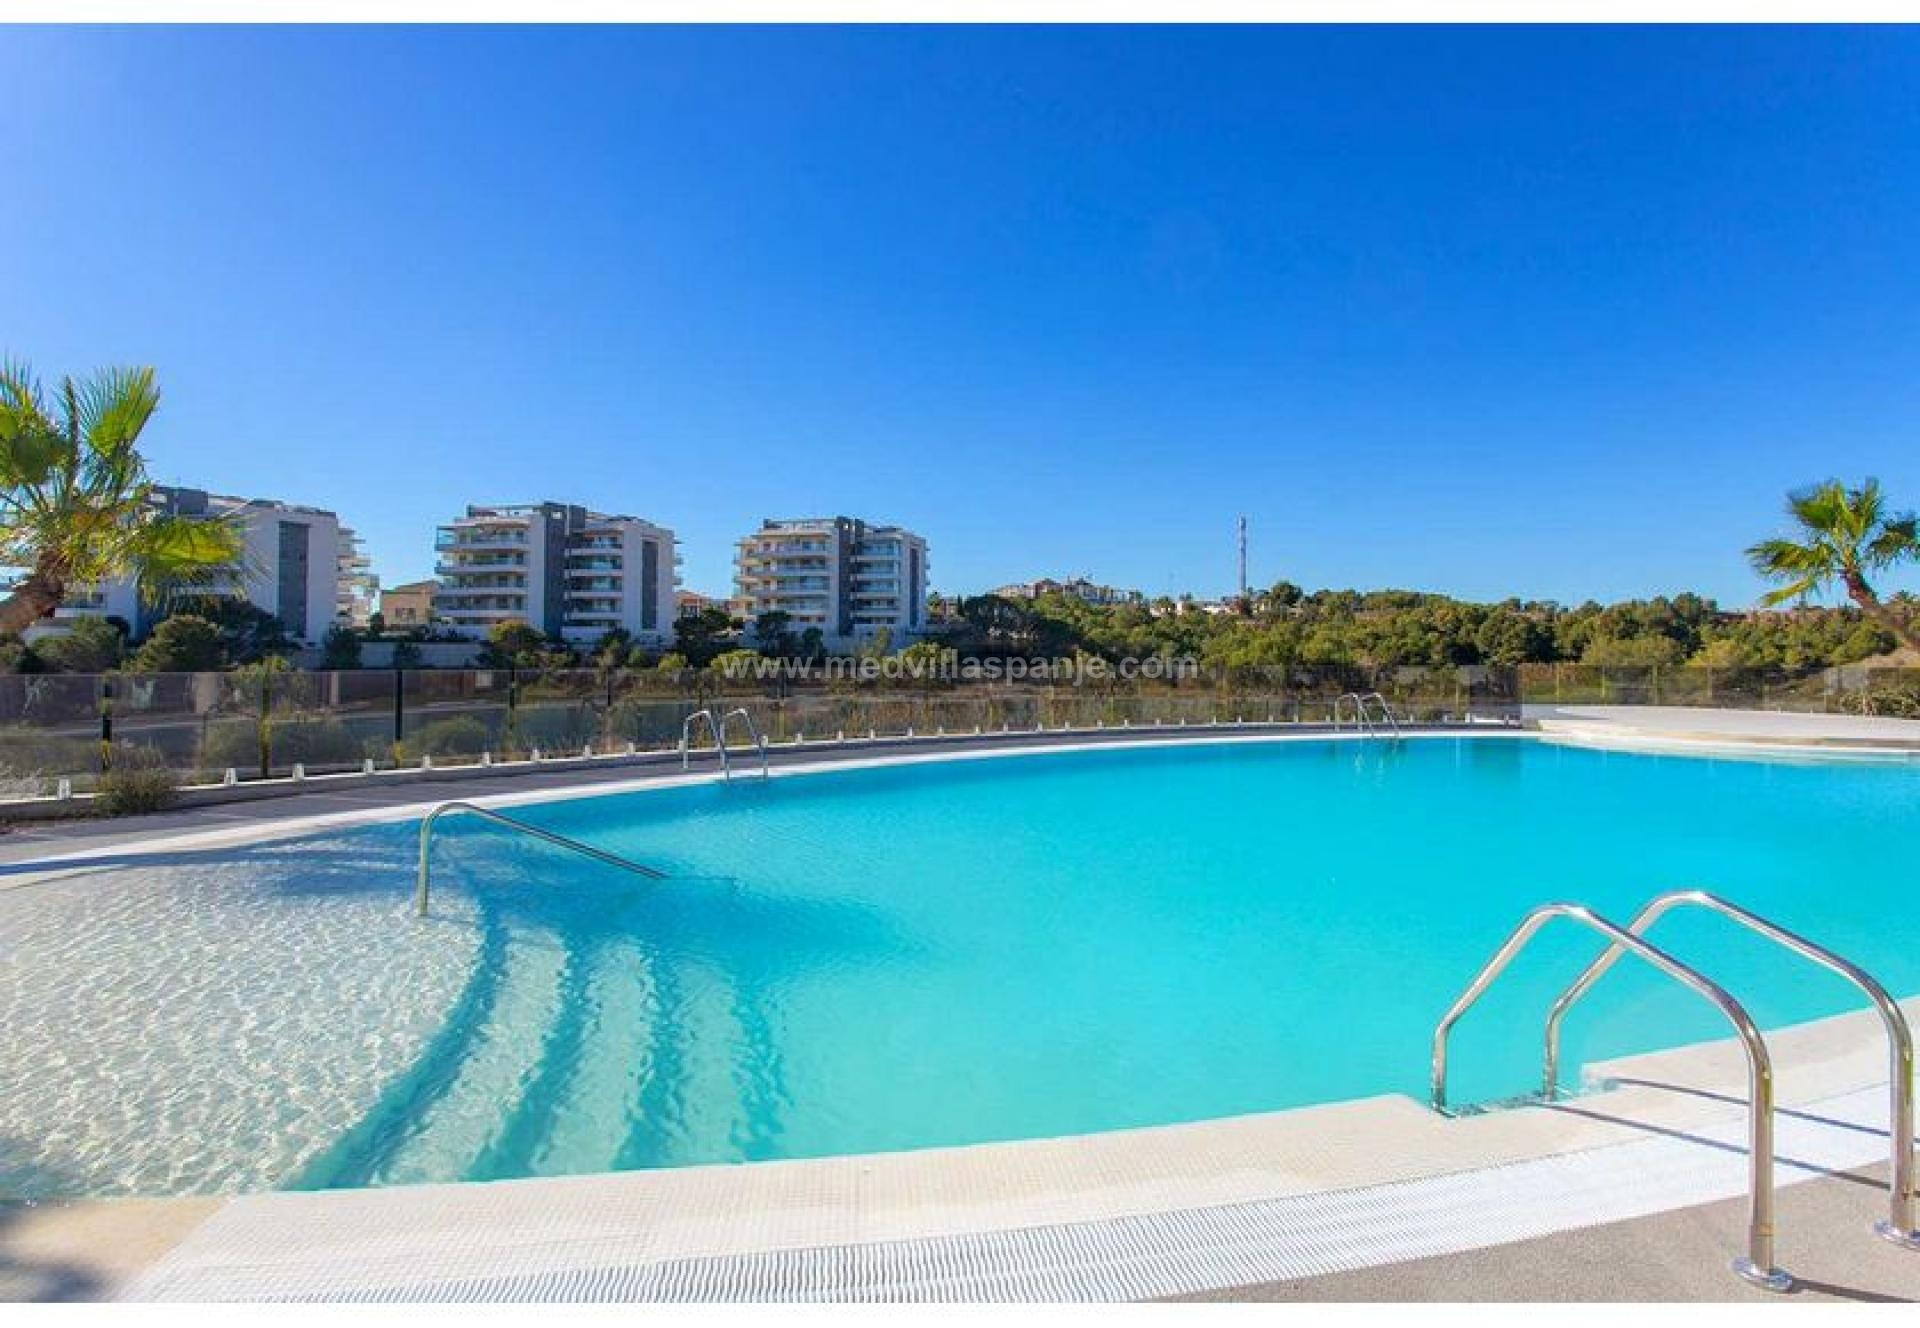 2 bedroom Penthouse in La Zenia - New build in Medvilla Spanje